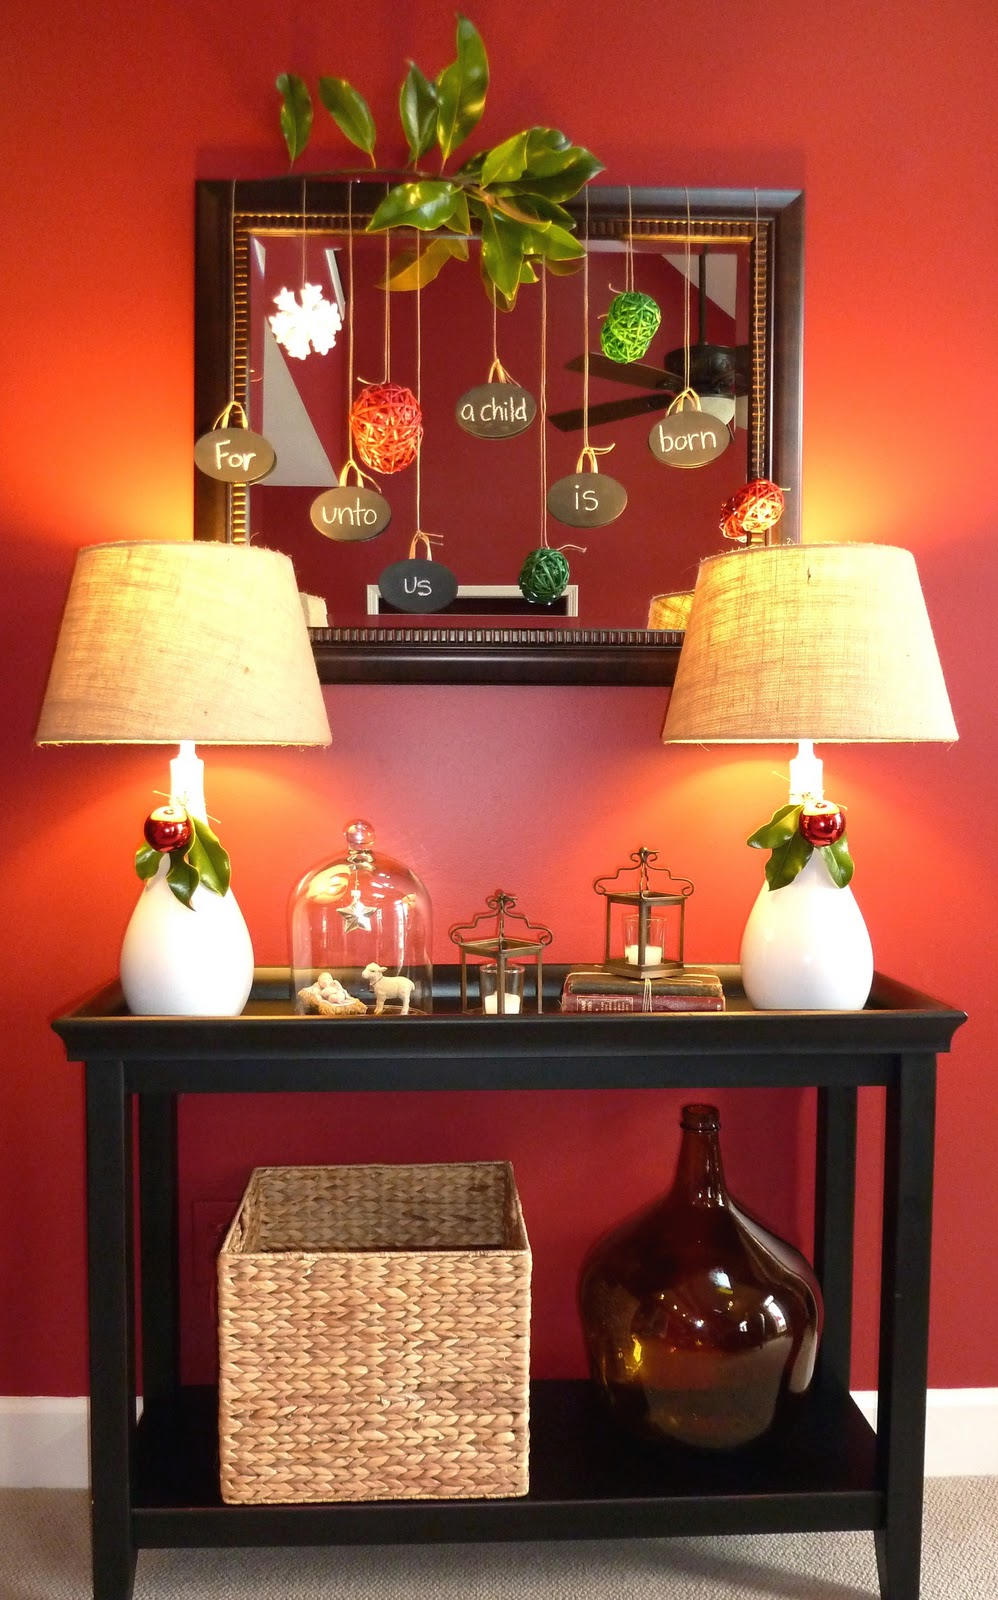 Fabulous Fun And Traditional Christmas Hallway Decor Using A Pier 1 Machost Co Dining Chair Design Ideas Machostcouk